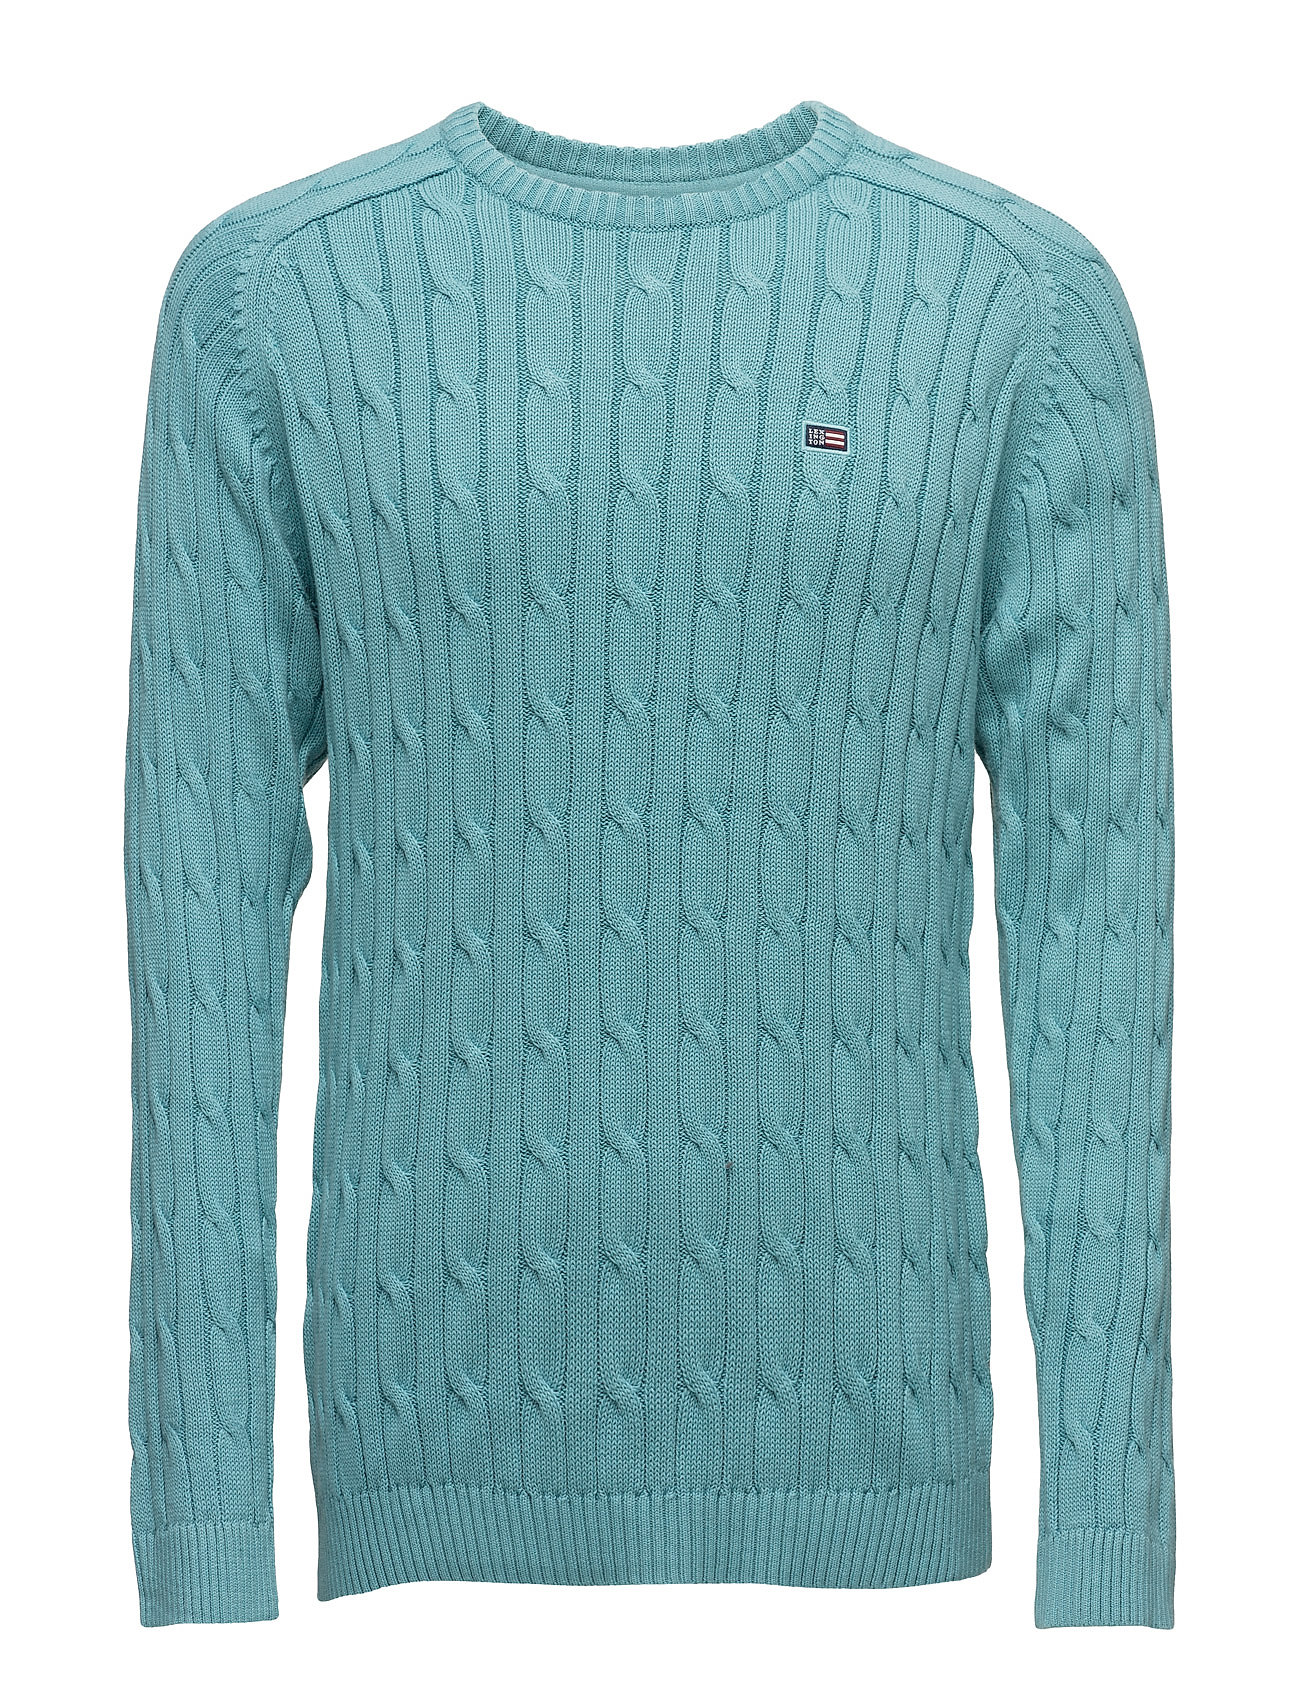 Andrew Cotton Cable Sweater Lexington Company Rundhalsede til Herrer i